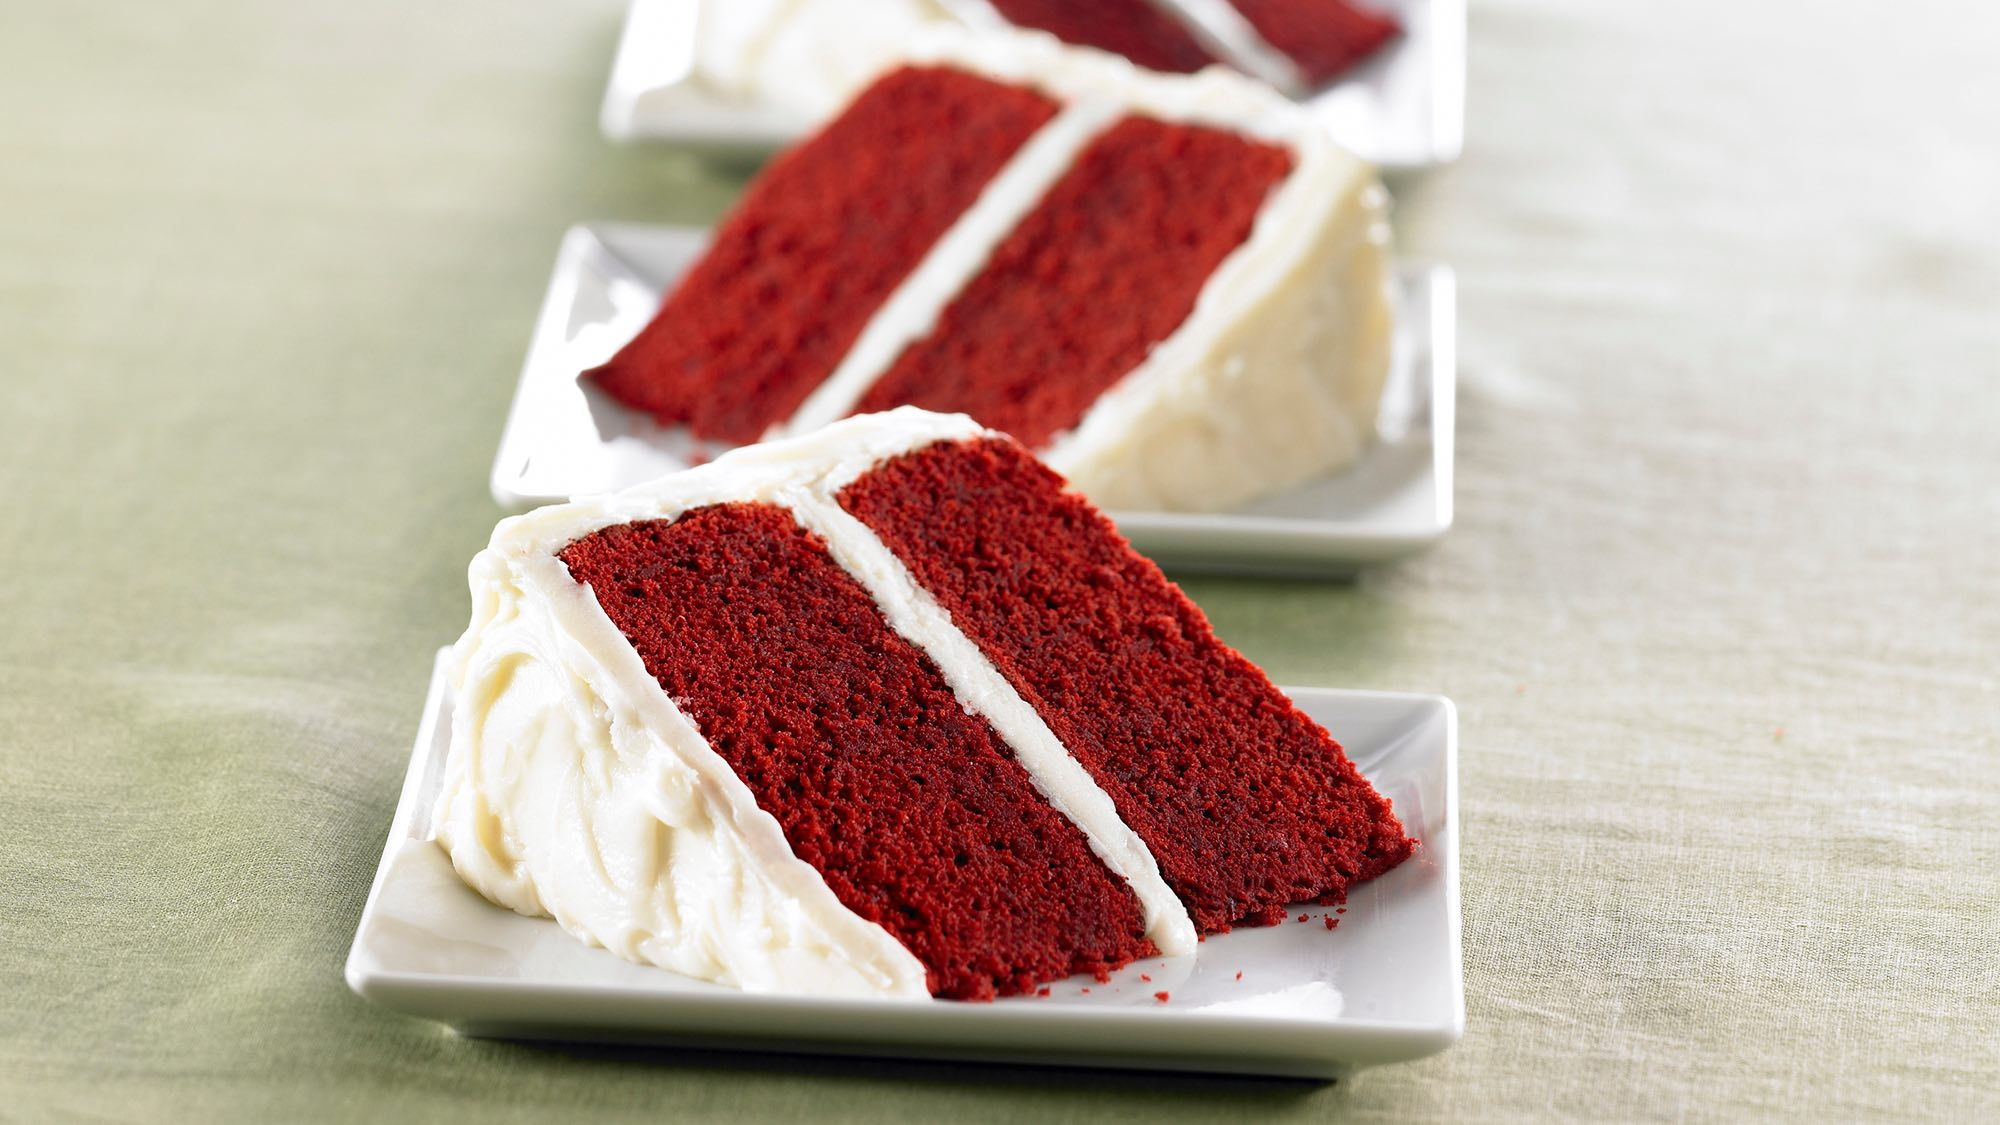 red-velvet-cake-with-vanilla-cream-cheese-frosting.jpg